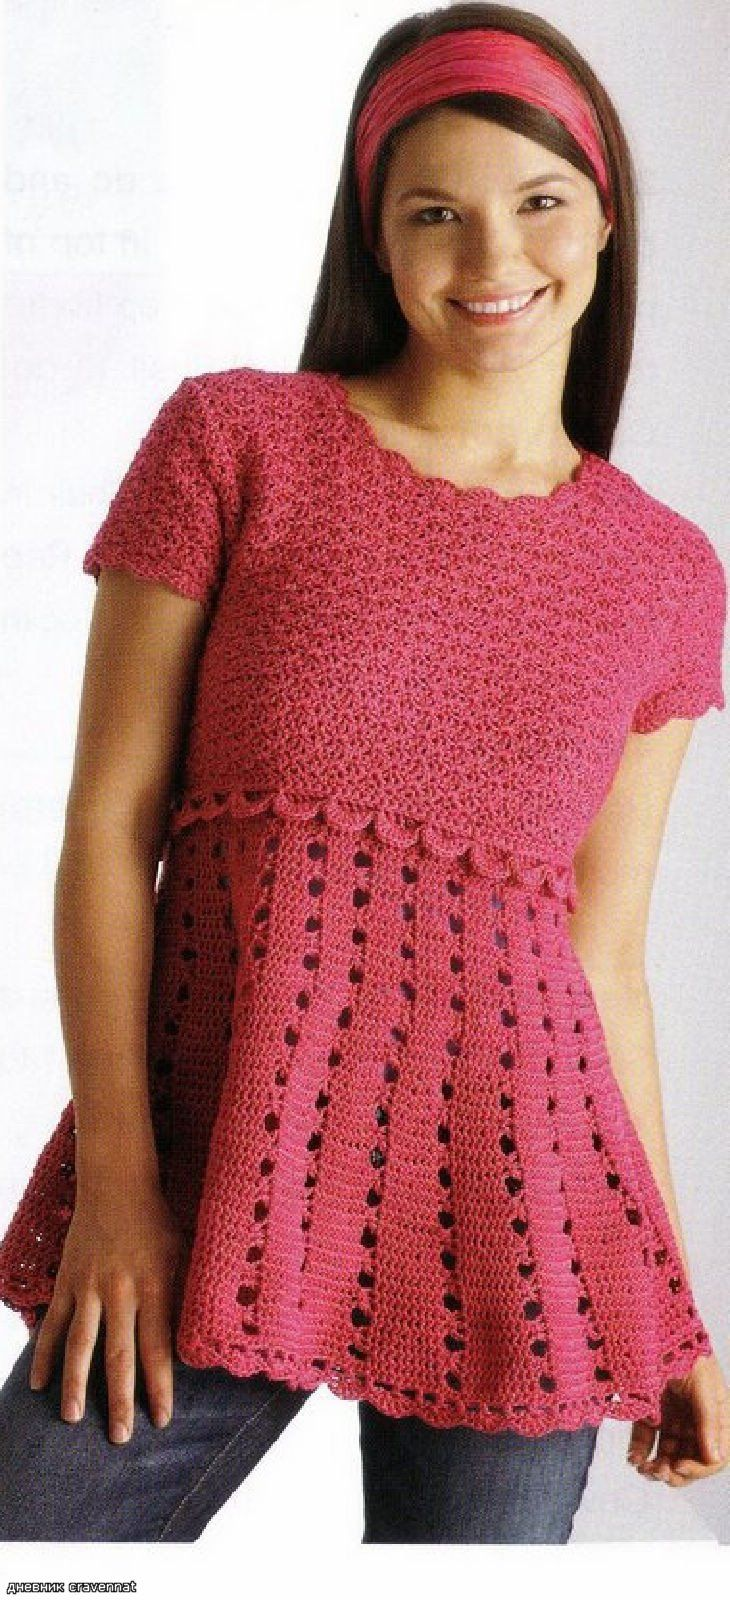 Free Crochet Patterns In English : Dark Pink Tunic - FREE crochet pattern - Russian site but ...